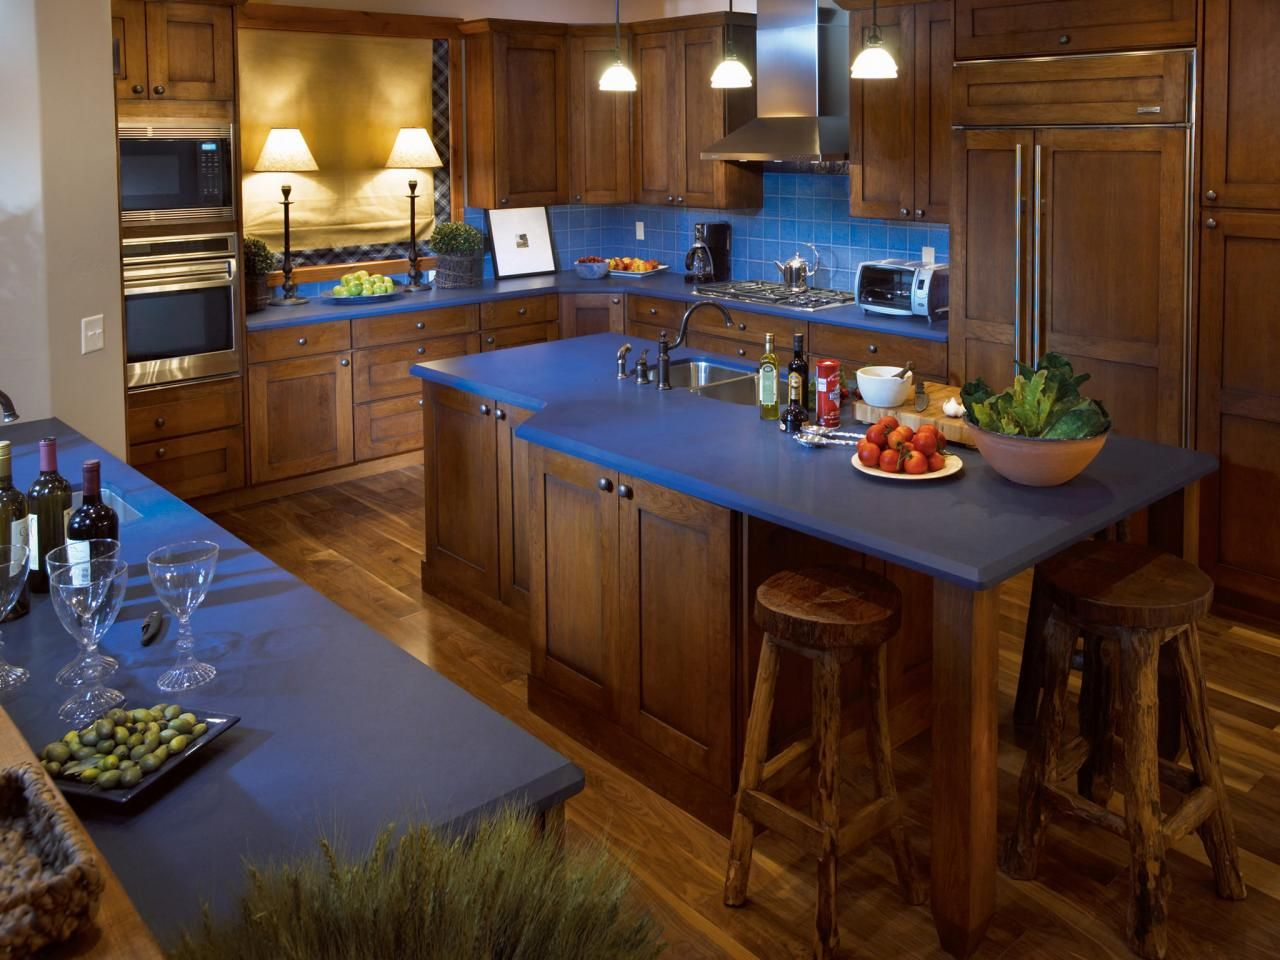 blue countertop kitchen ideas